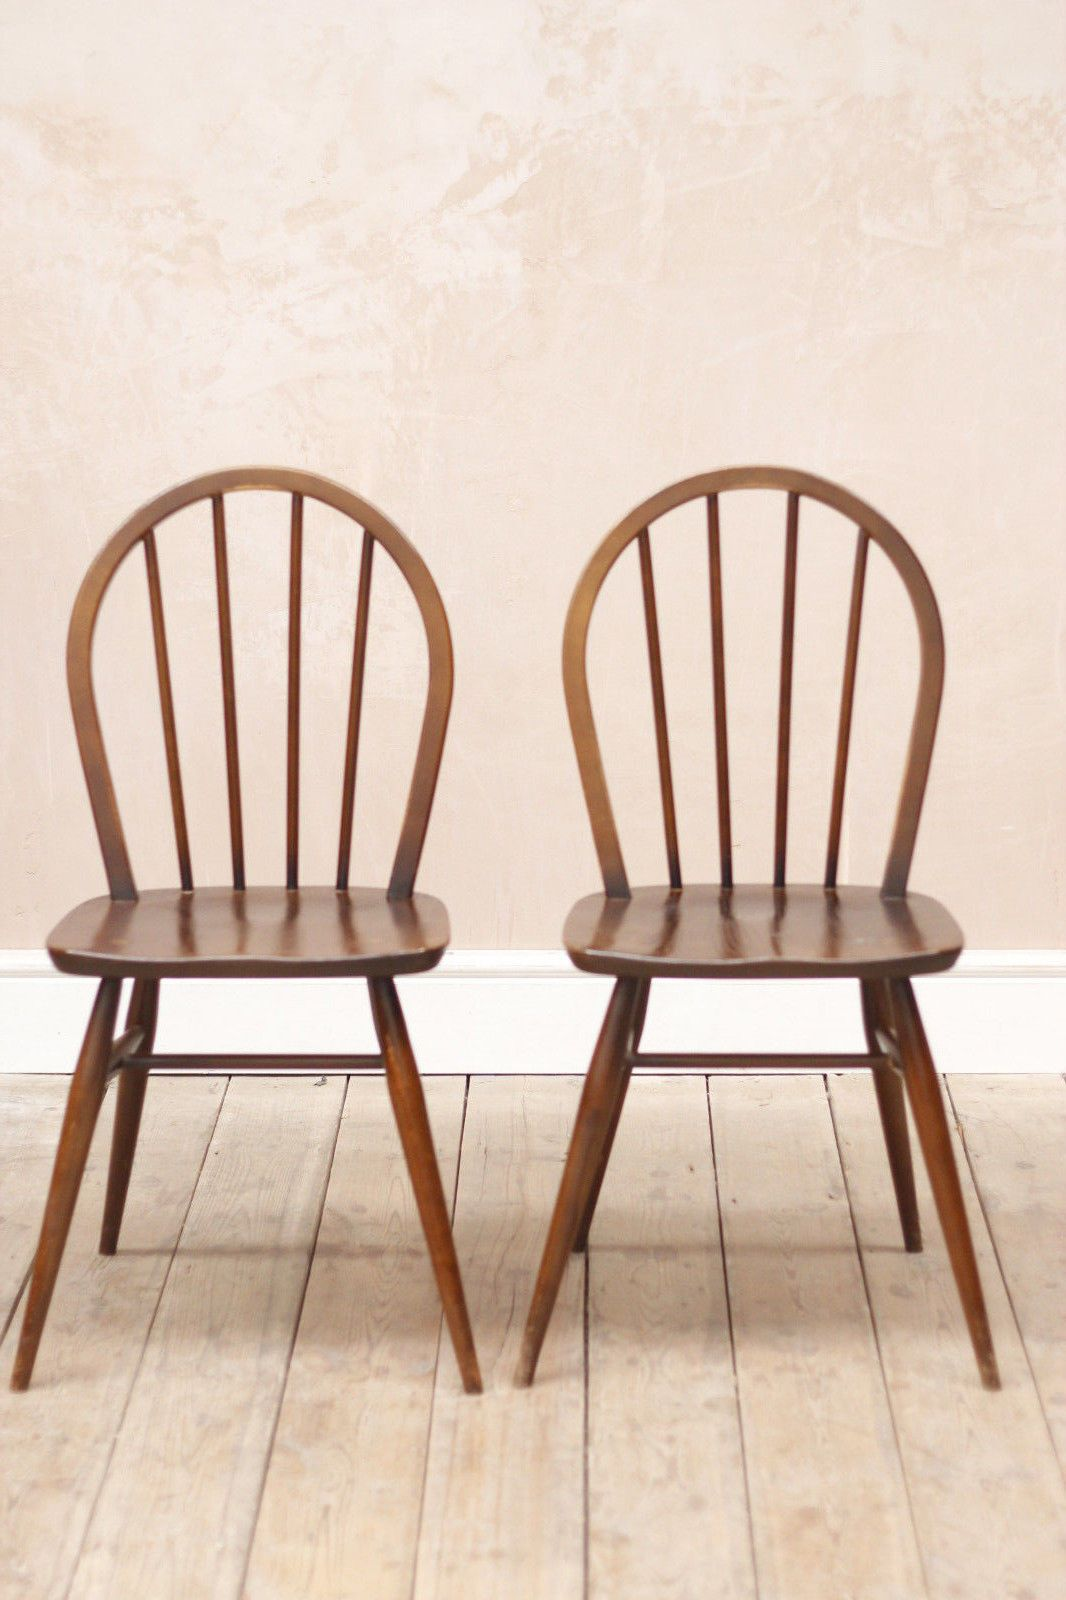 Vintage Mid Century Ercol Stickback Chairs Chair, Mid